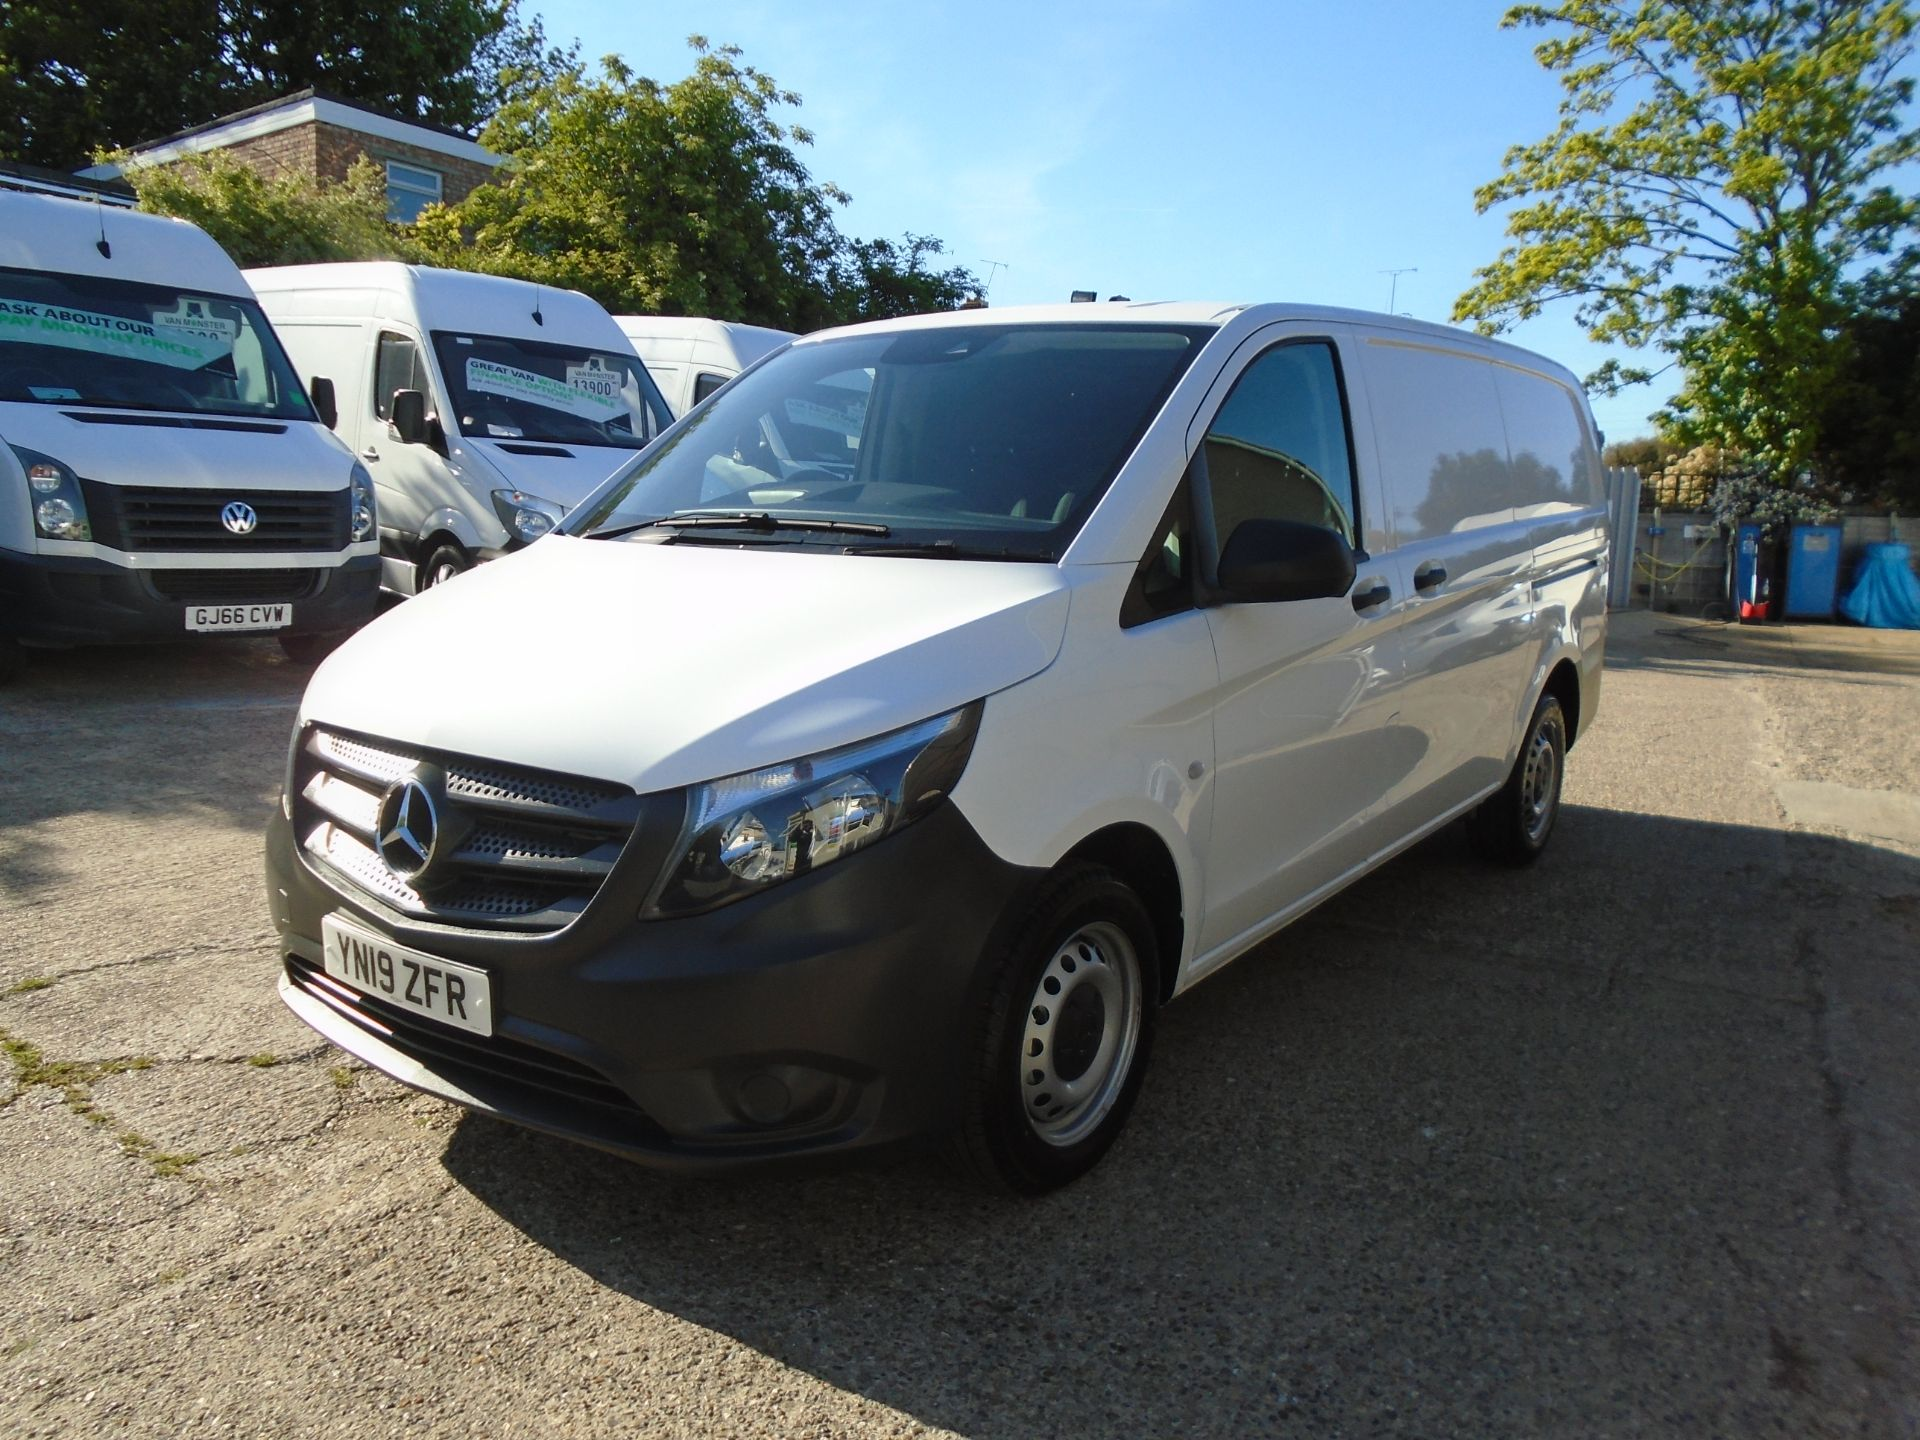 2019 Mercedes-Benz Vito  111Cdi Van Euro 6 Massive specification A/C Air Con, Delivery Miles Only (YN19ZFR) Image 3